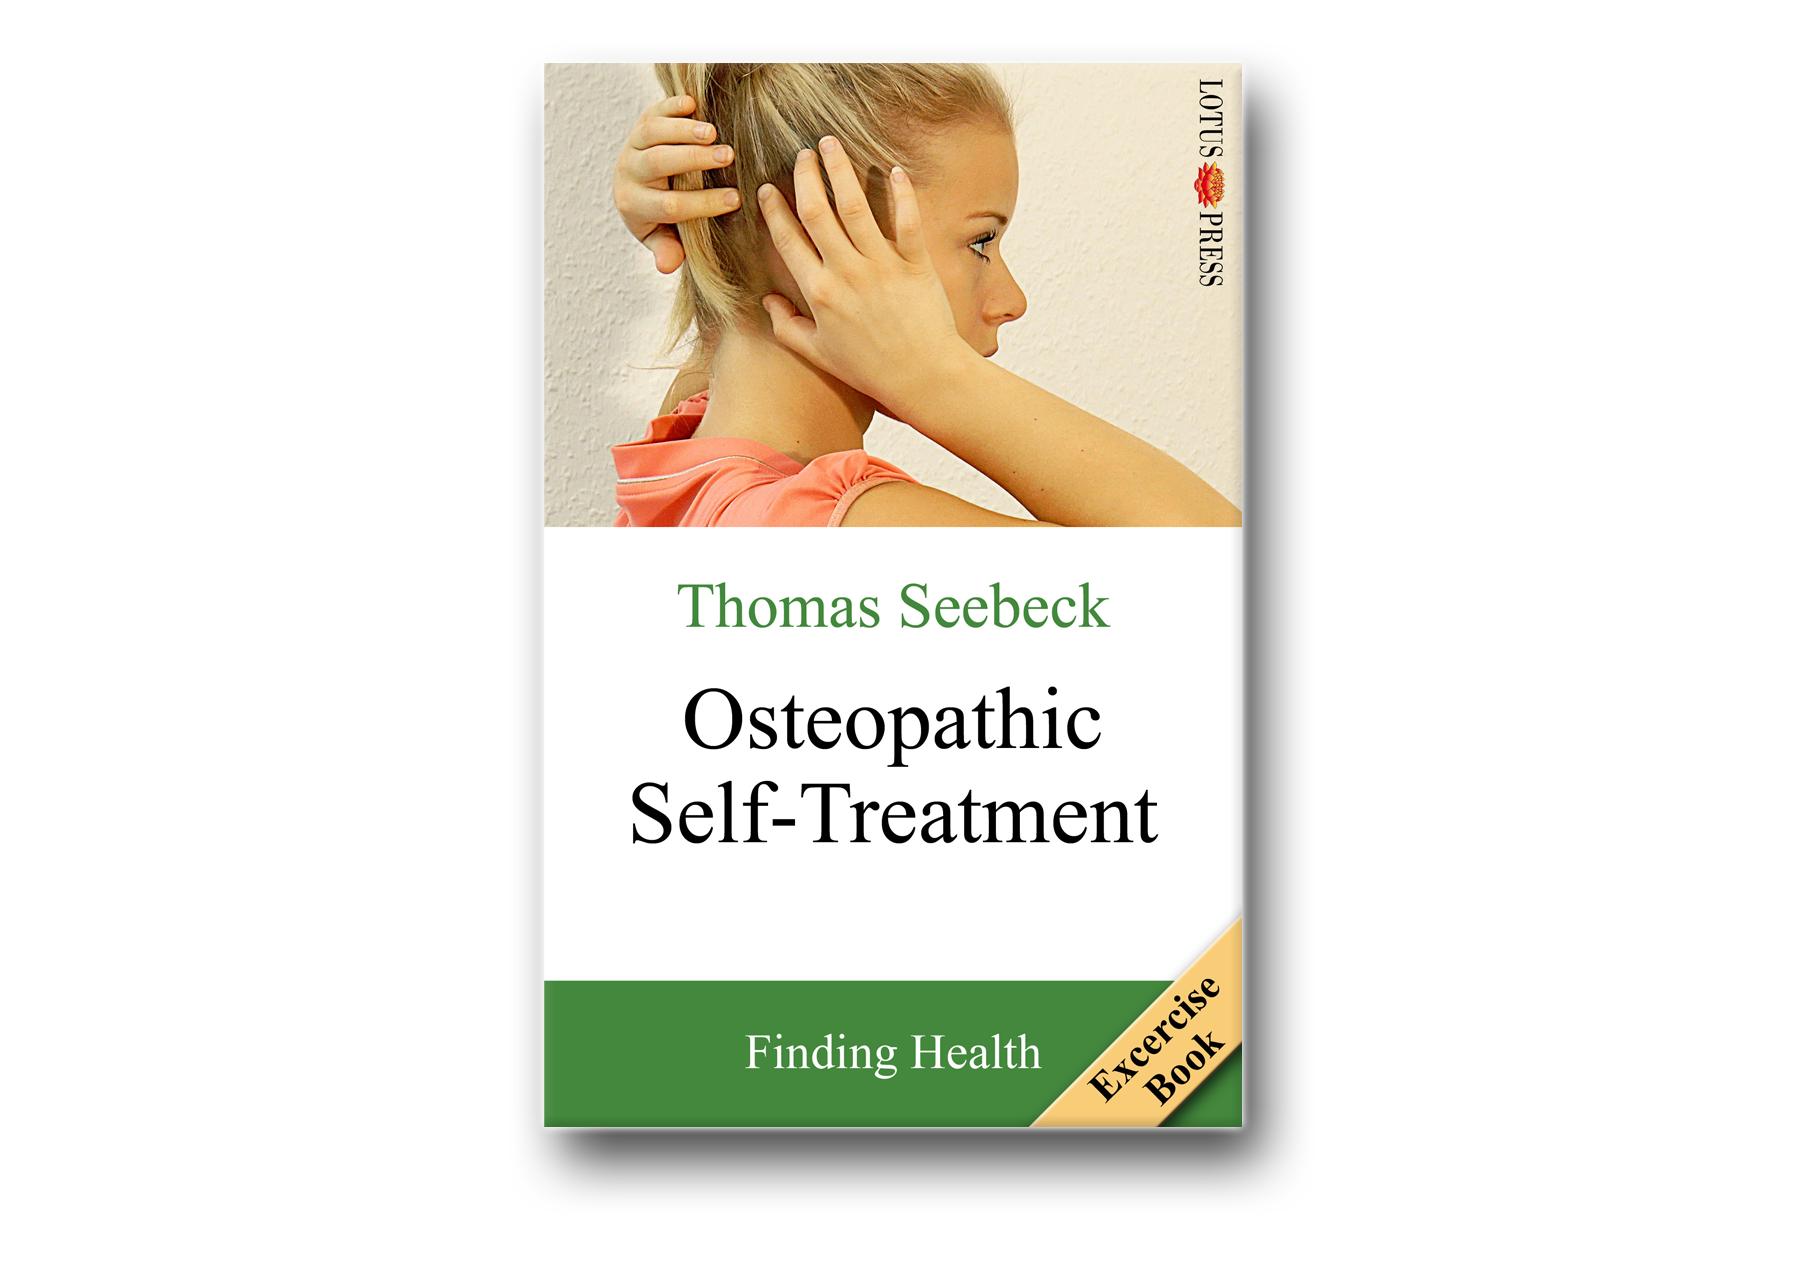 Osteopathic Self-Treatment: Finding Health